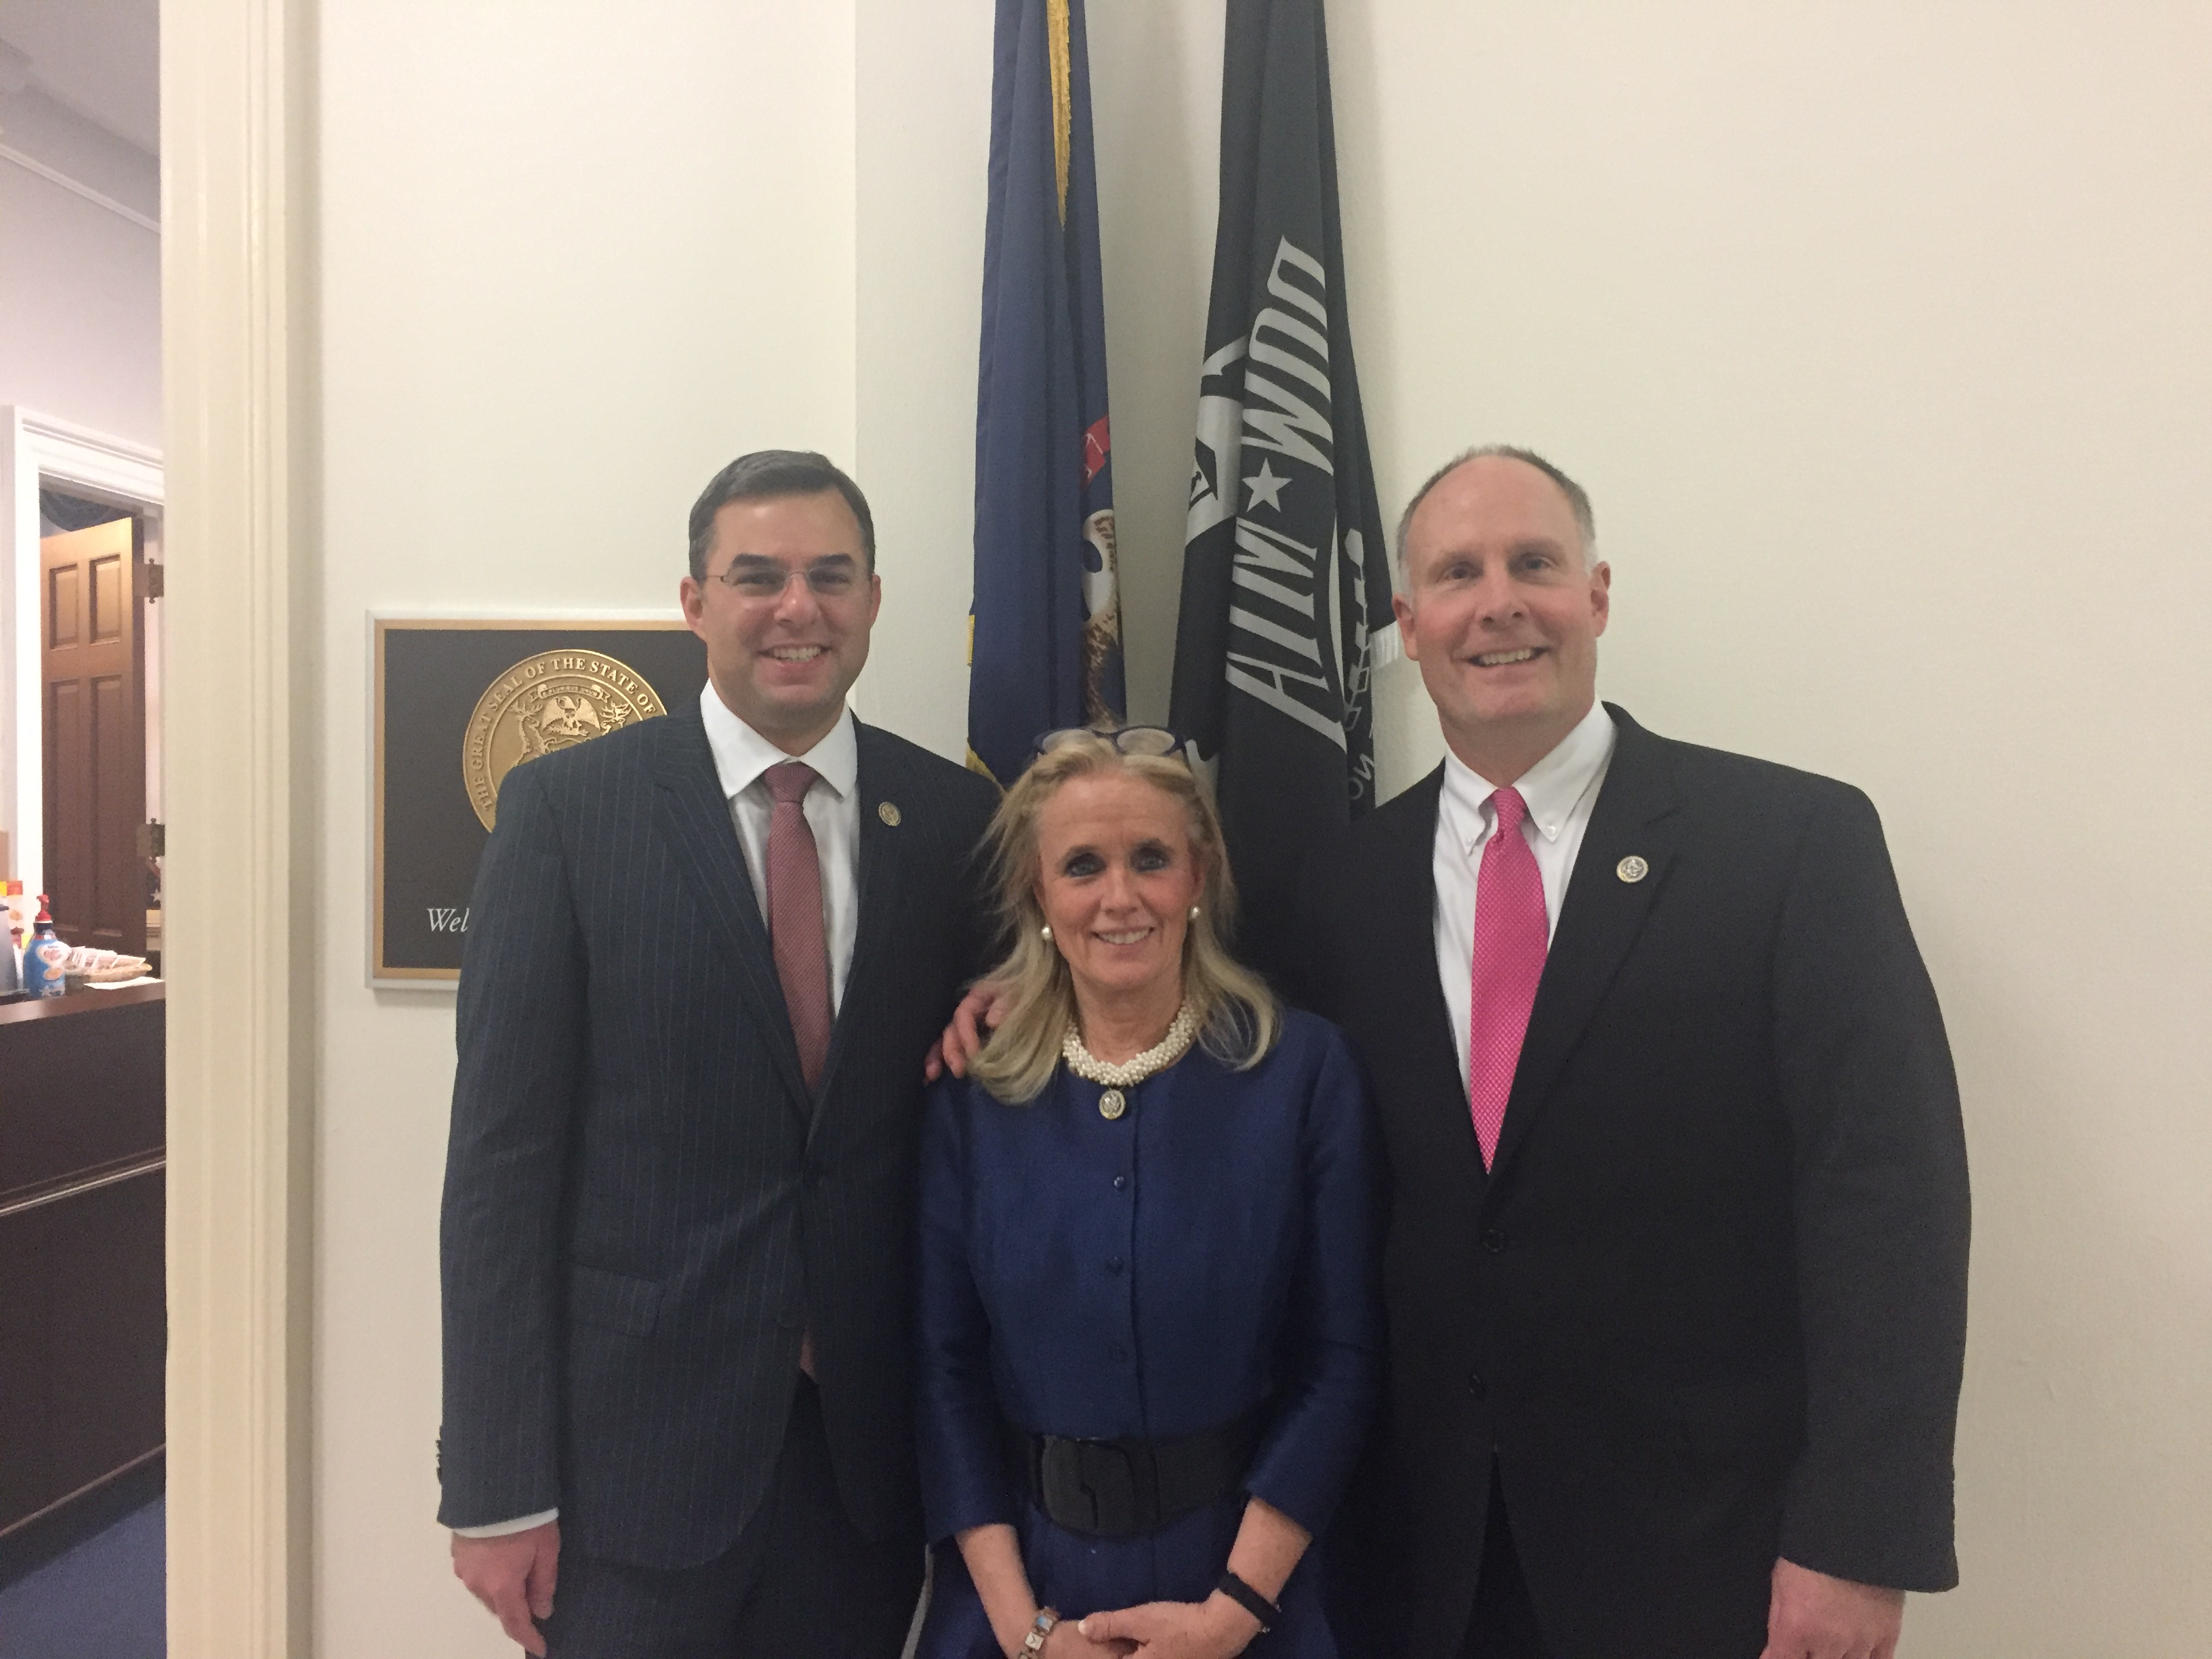 From left to right: Justin Amaash, Debbie Dingell, at the Michigan open house. (Photo courtesy of Dingell's office)